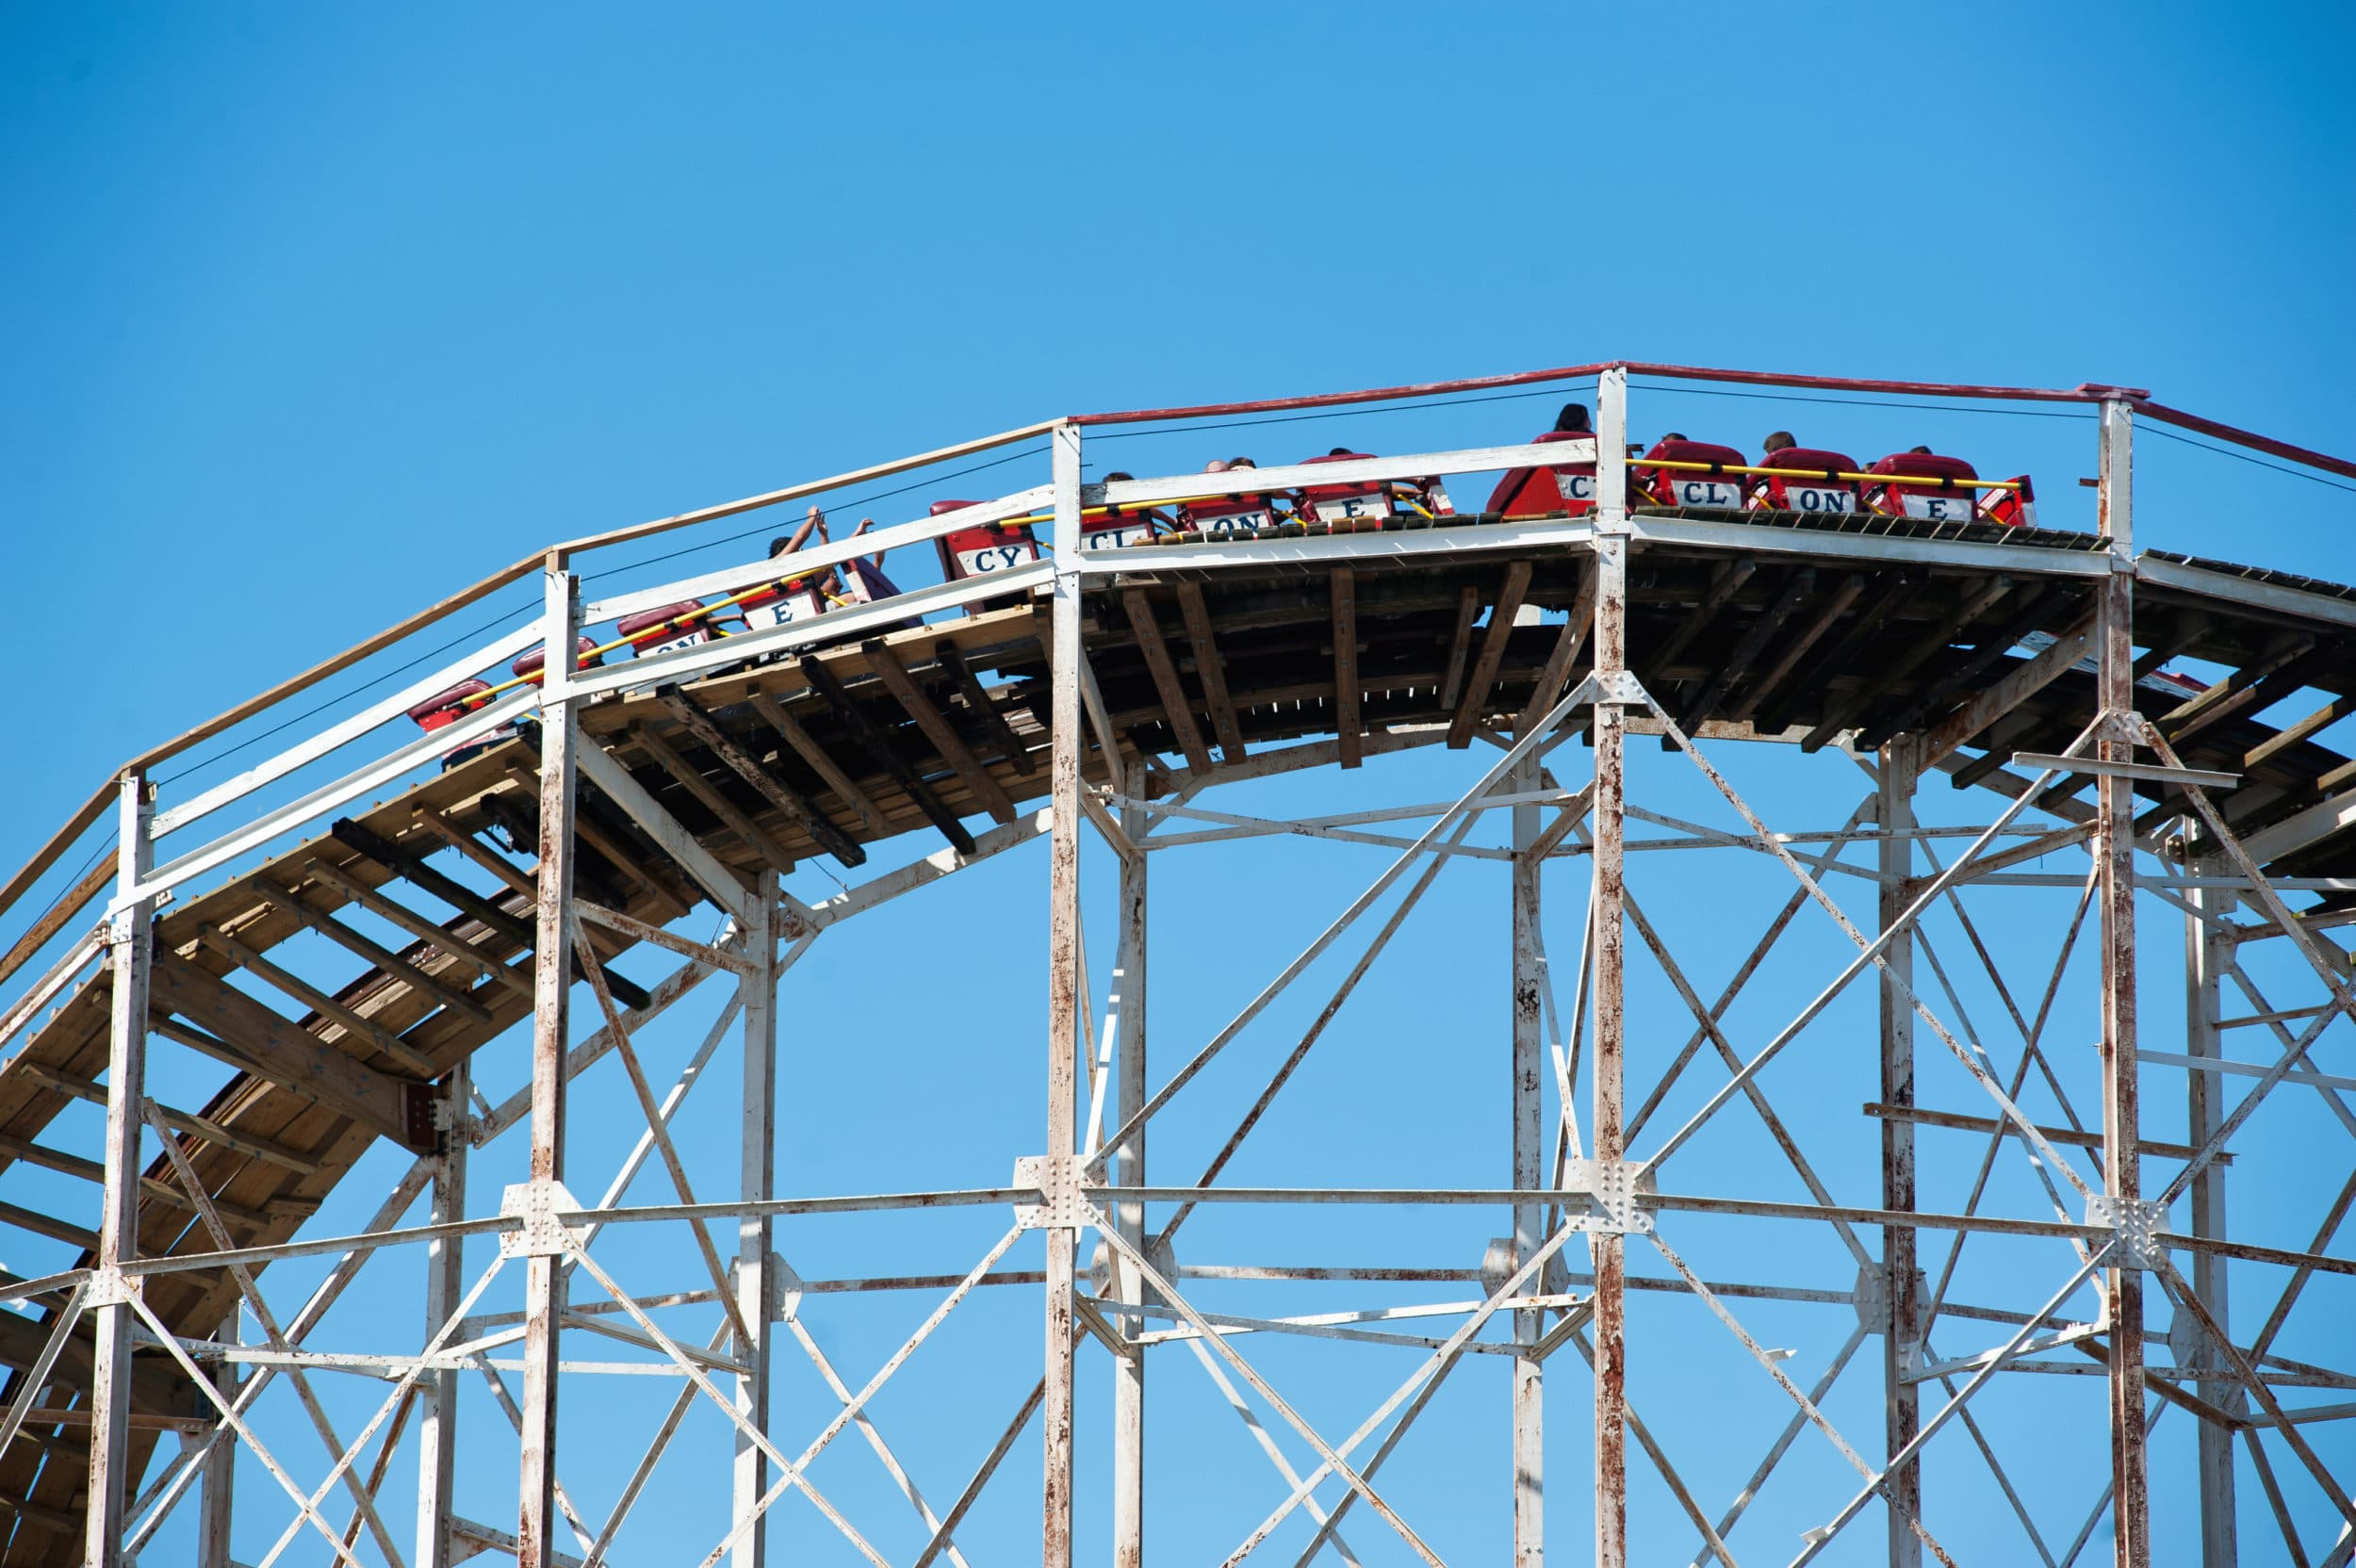 Cyclone roller coaster at Coney Island, New York